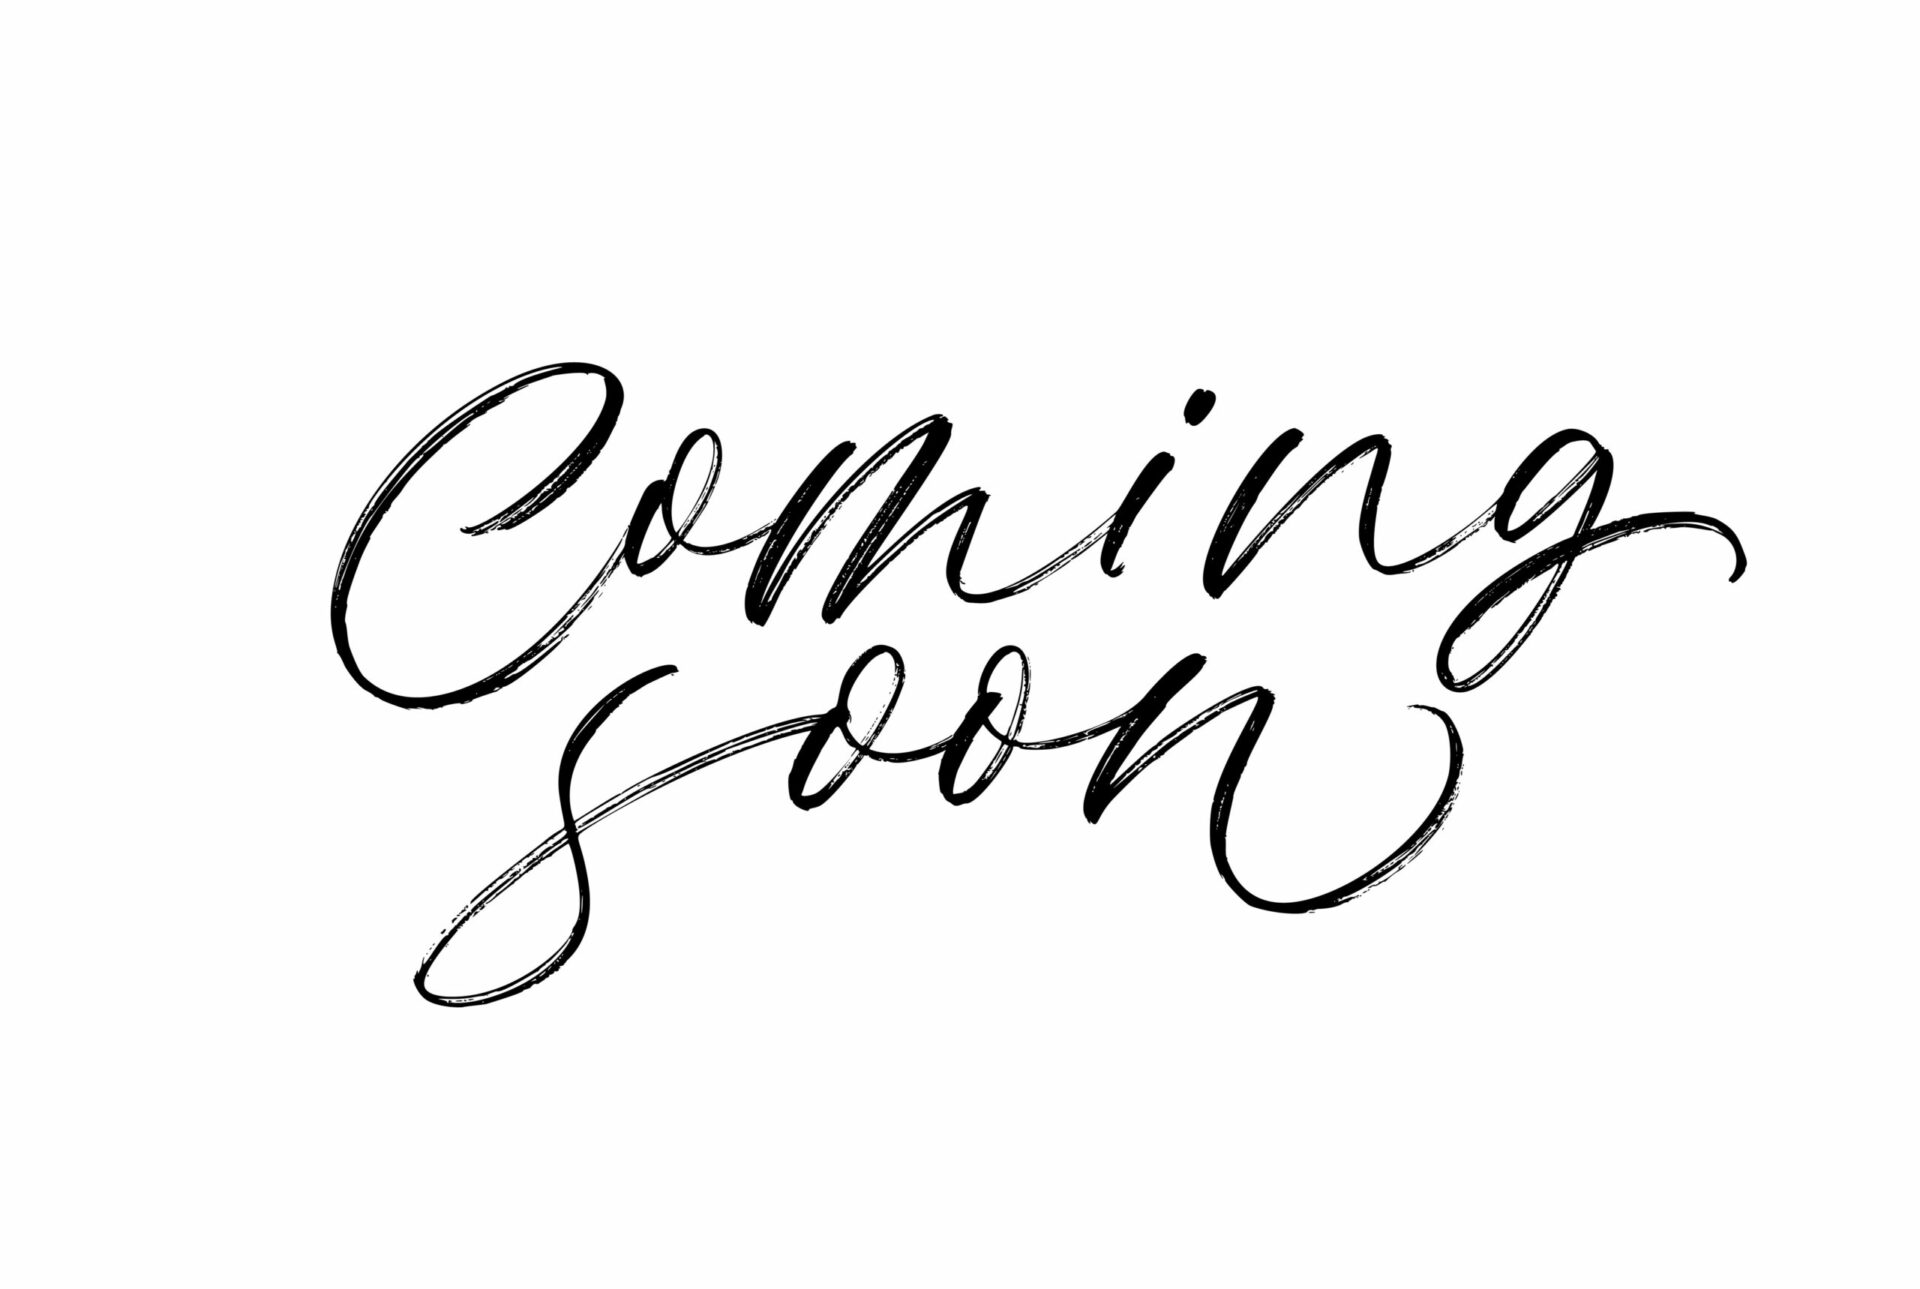 Coming soon phrase handwritten with a calligraphic brush. Ink illustration. Modern brush calligraphy. Isolated on white background.